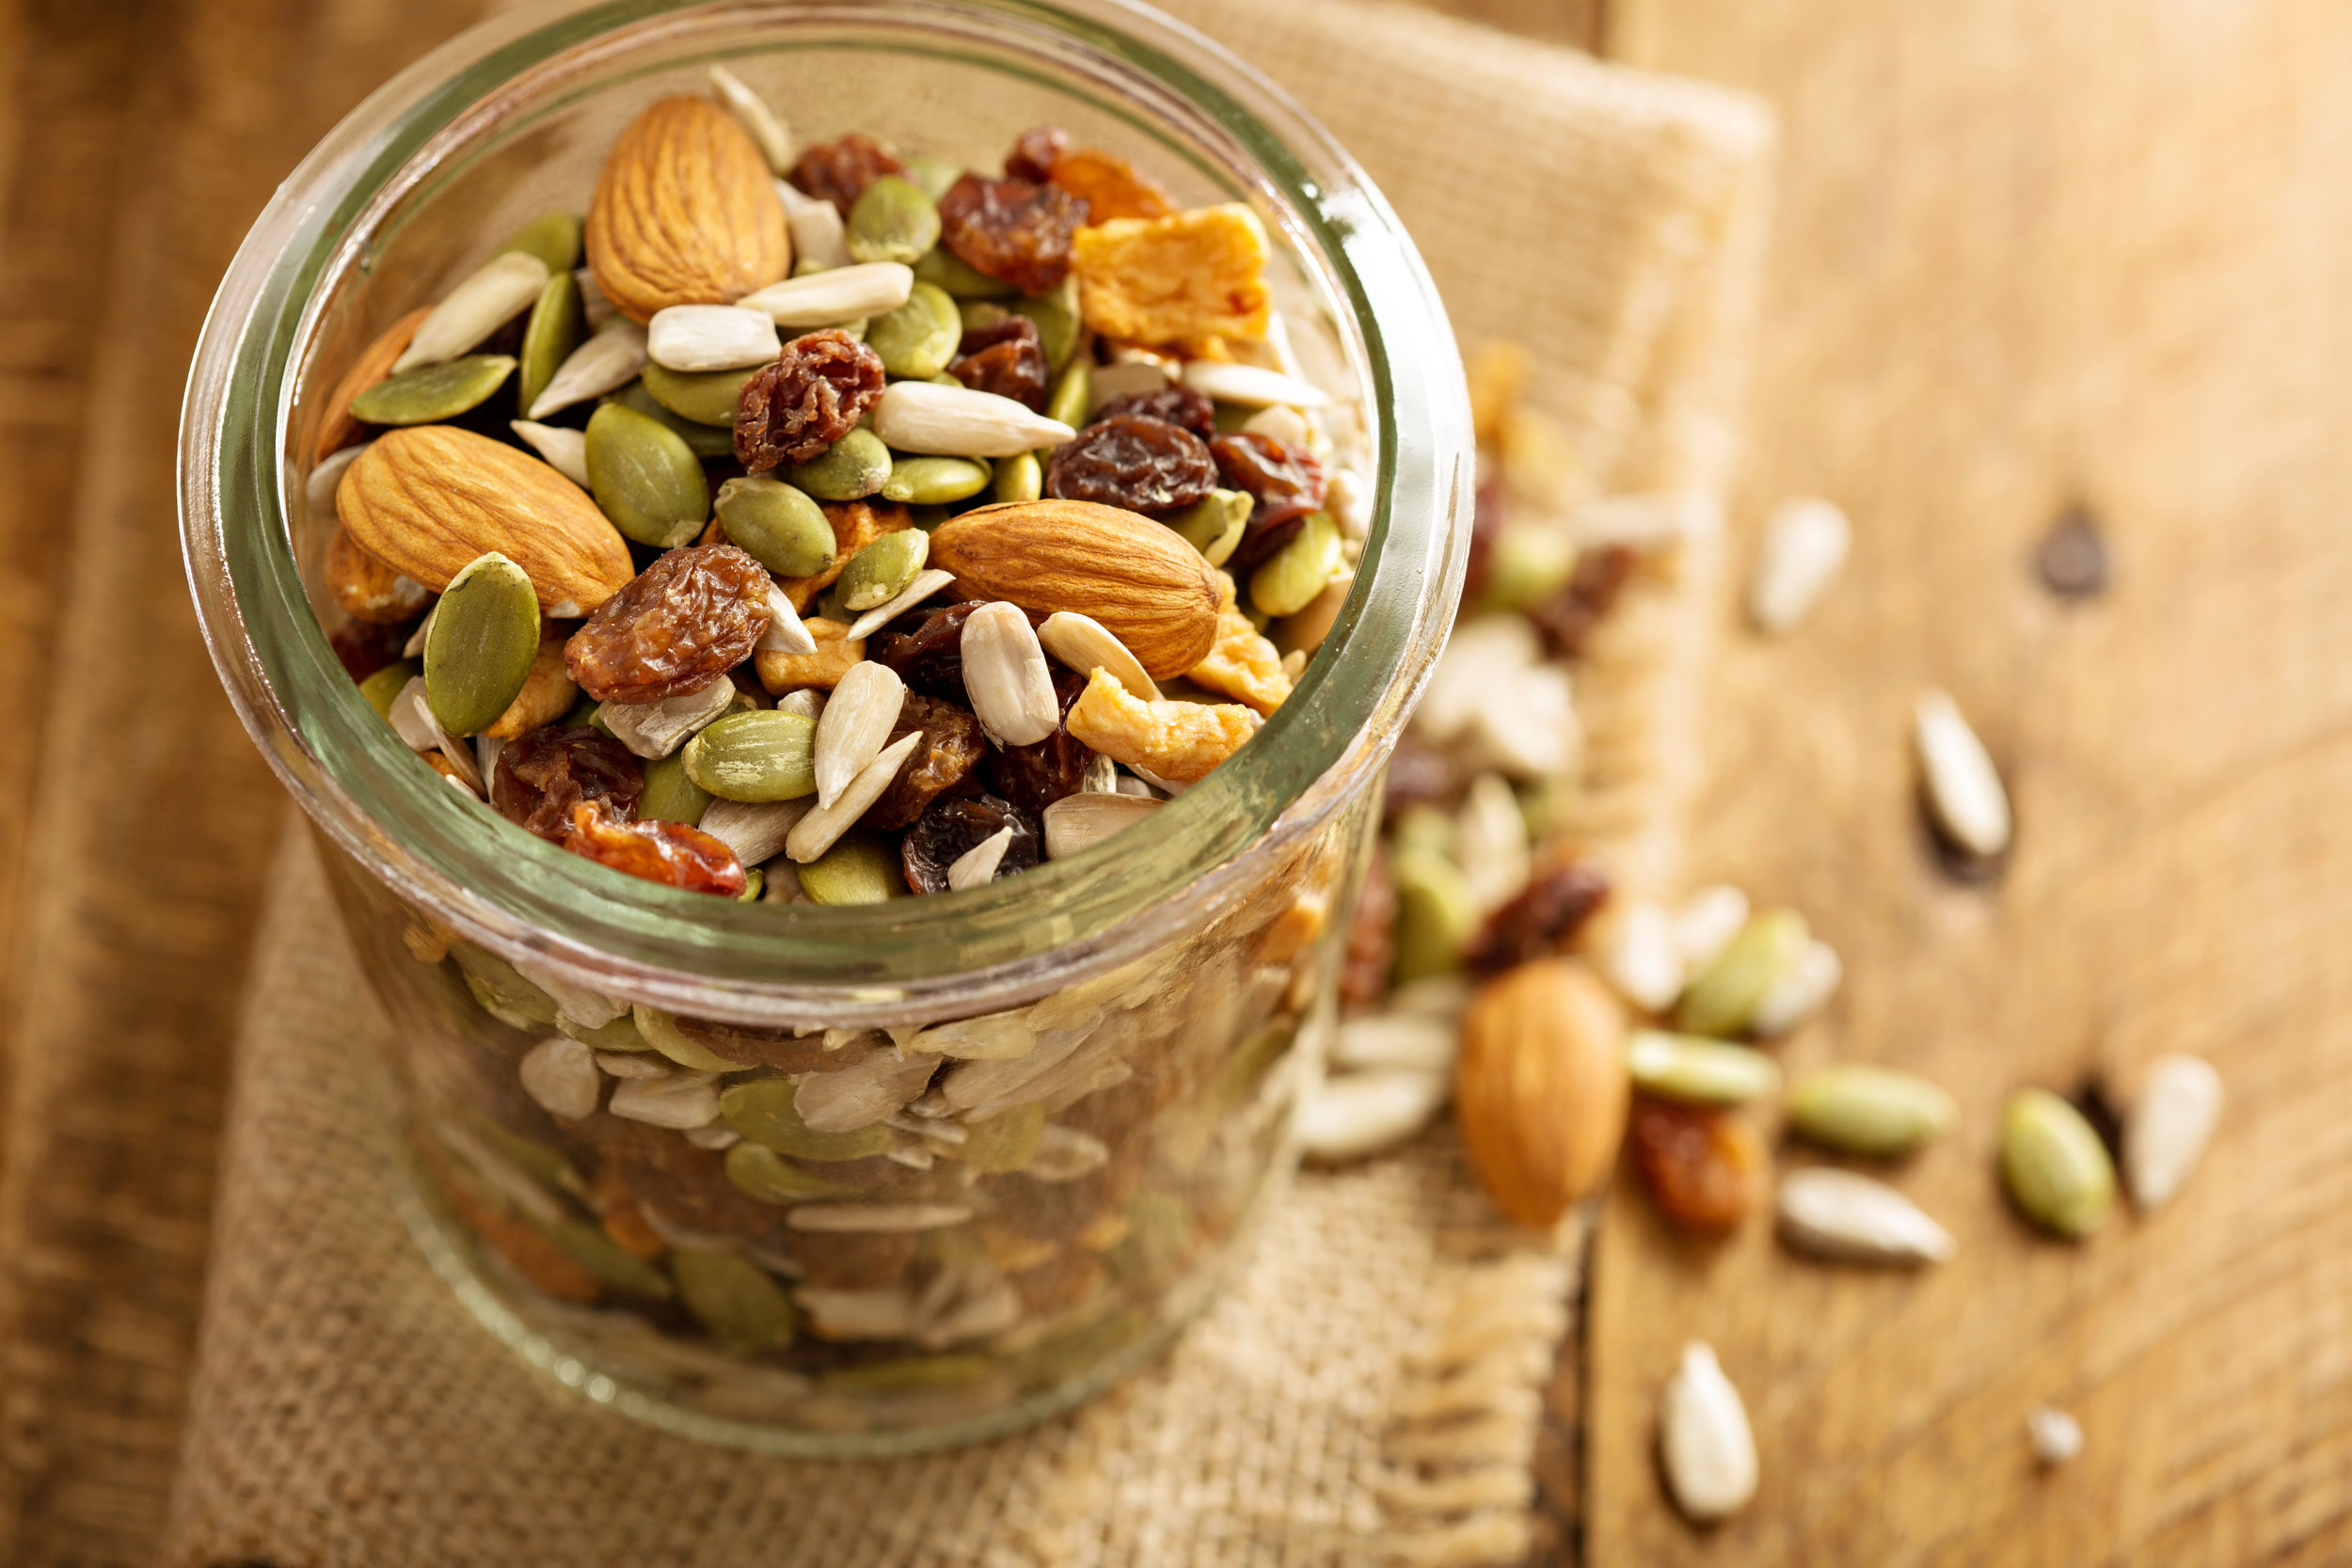 Eatcrispyfoods.  Apples, celery, carrots, snap peas, nuts, veggie chips, popcorn, roasted chickpeas, trail mix, whatever you may like. The more you chew, the slower you eat, and the more time your body has to record the richness of your foods.